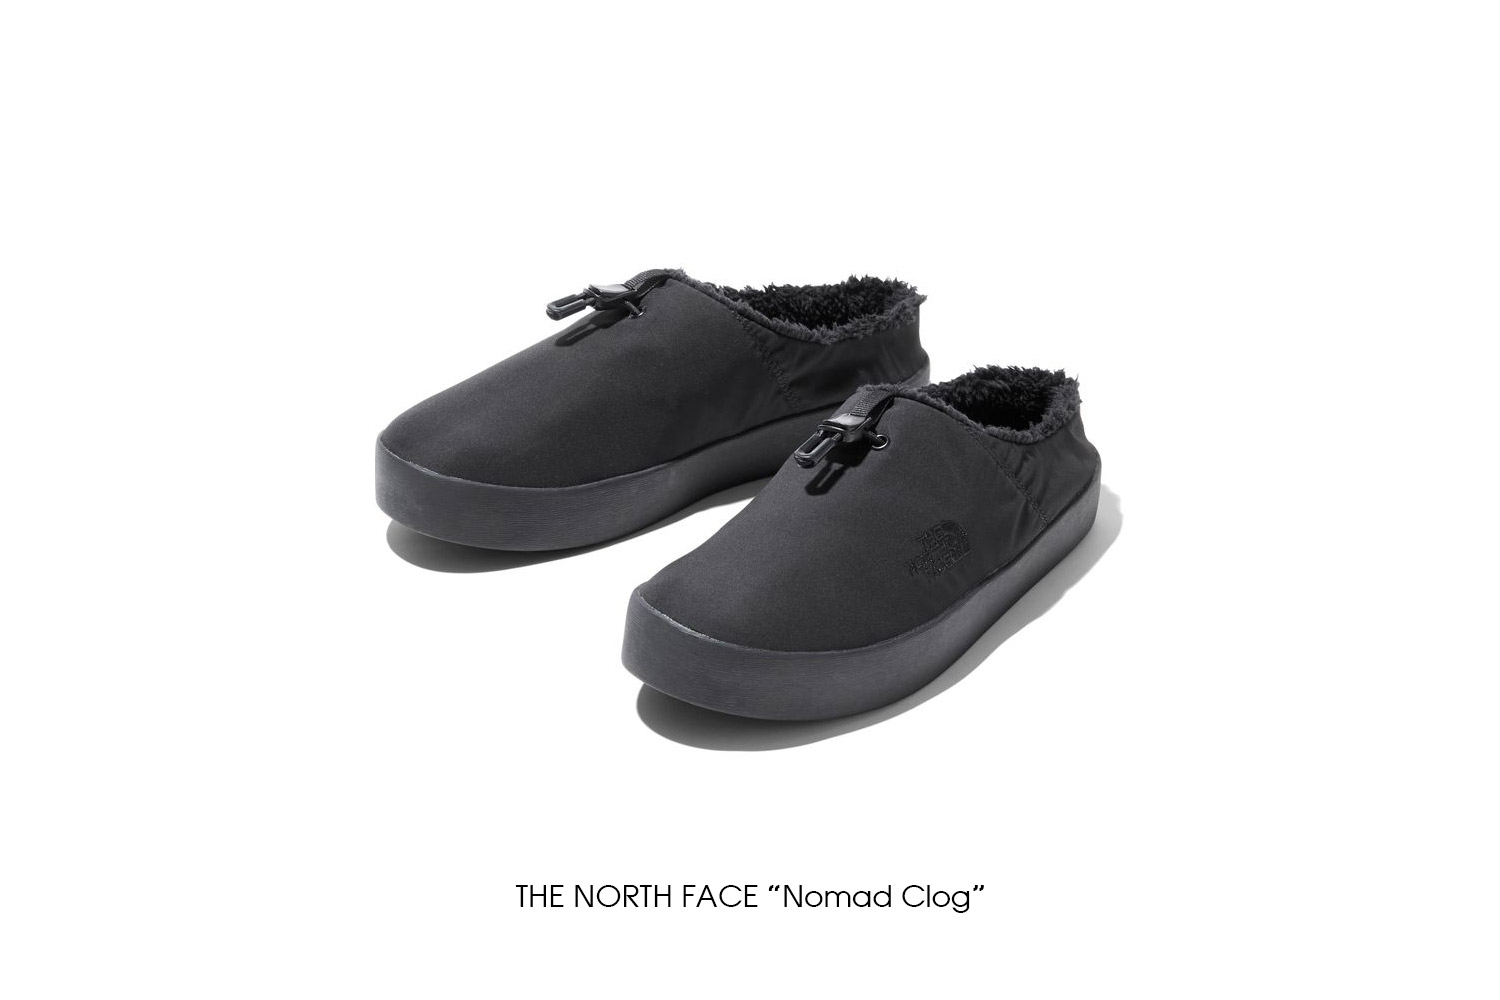 "THE NORTH FACE ""Nomad Clog"""